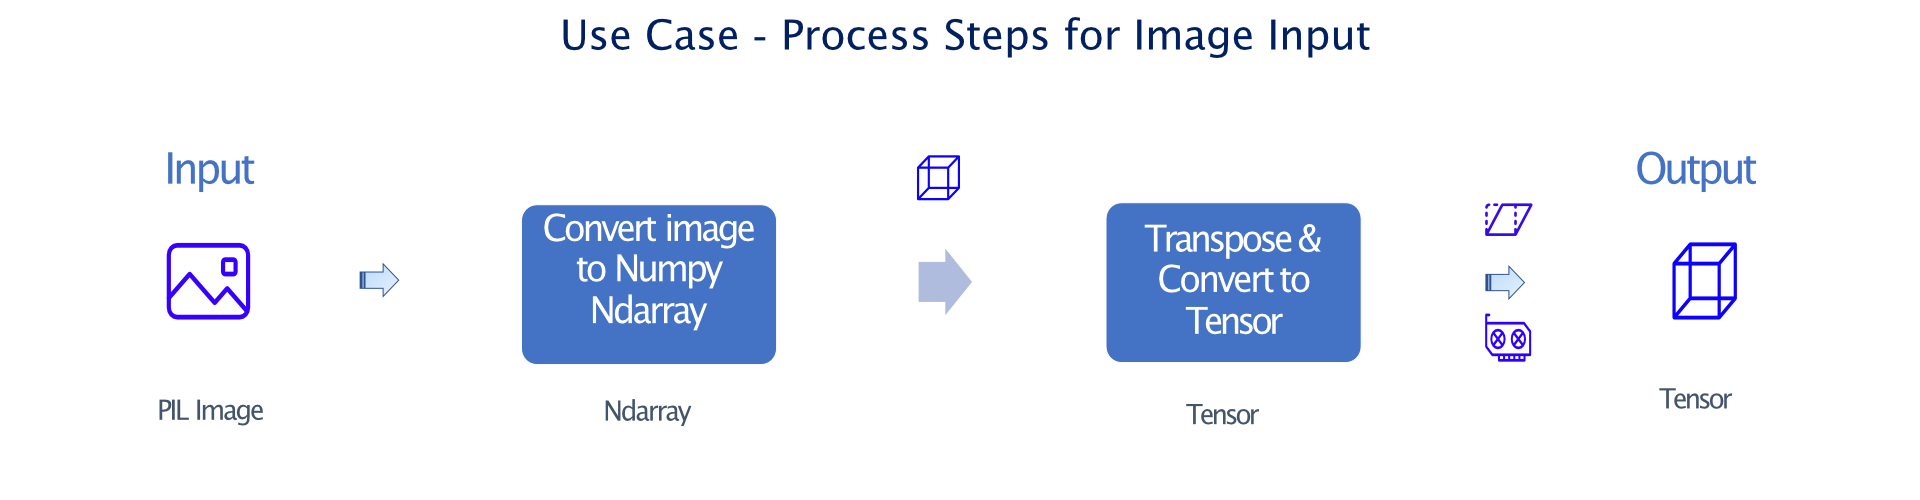 use case process steps for image Type Dispatch